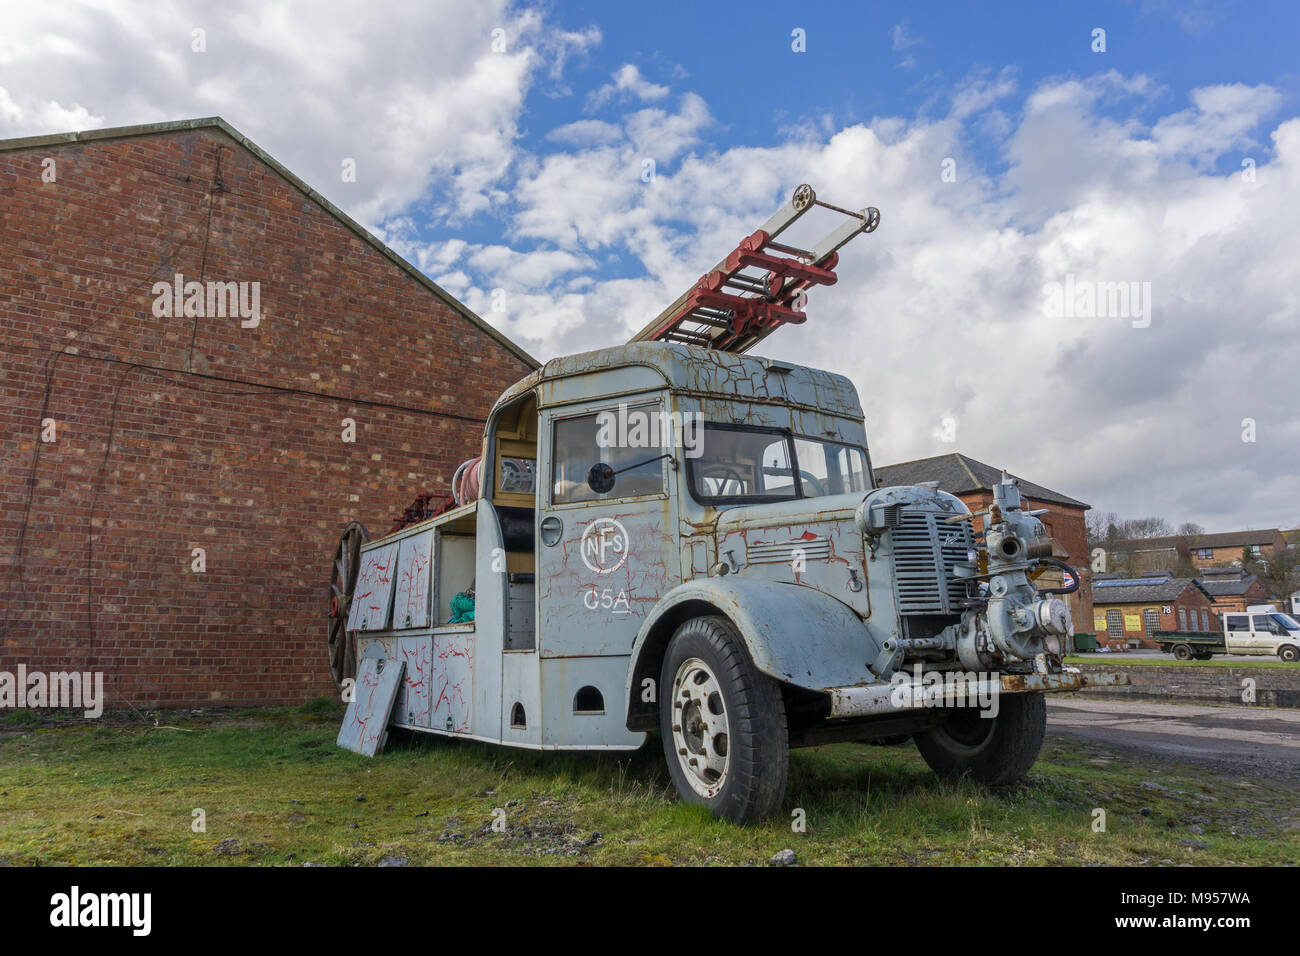 Battered old fire engine at the former Royal Ordnance Depot, Weedon, Northamptonshire, UK - Stock Image